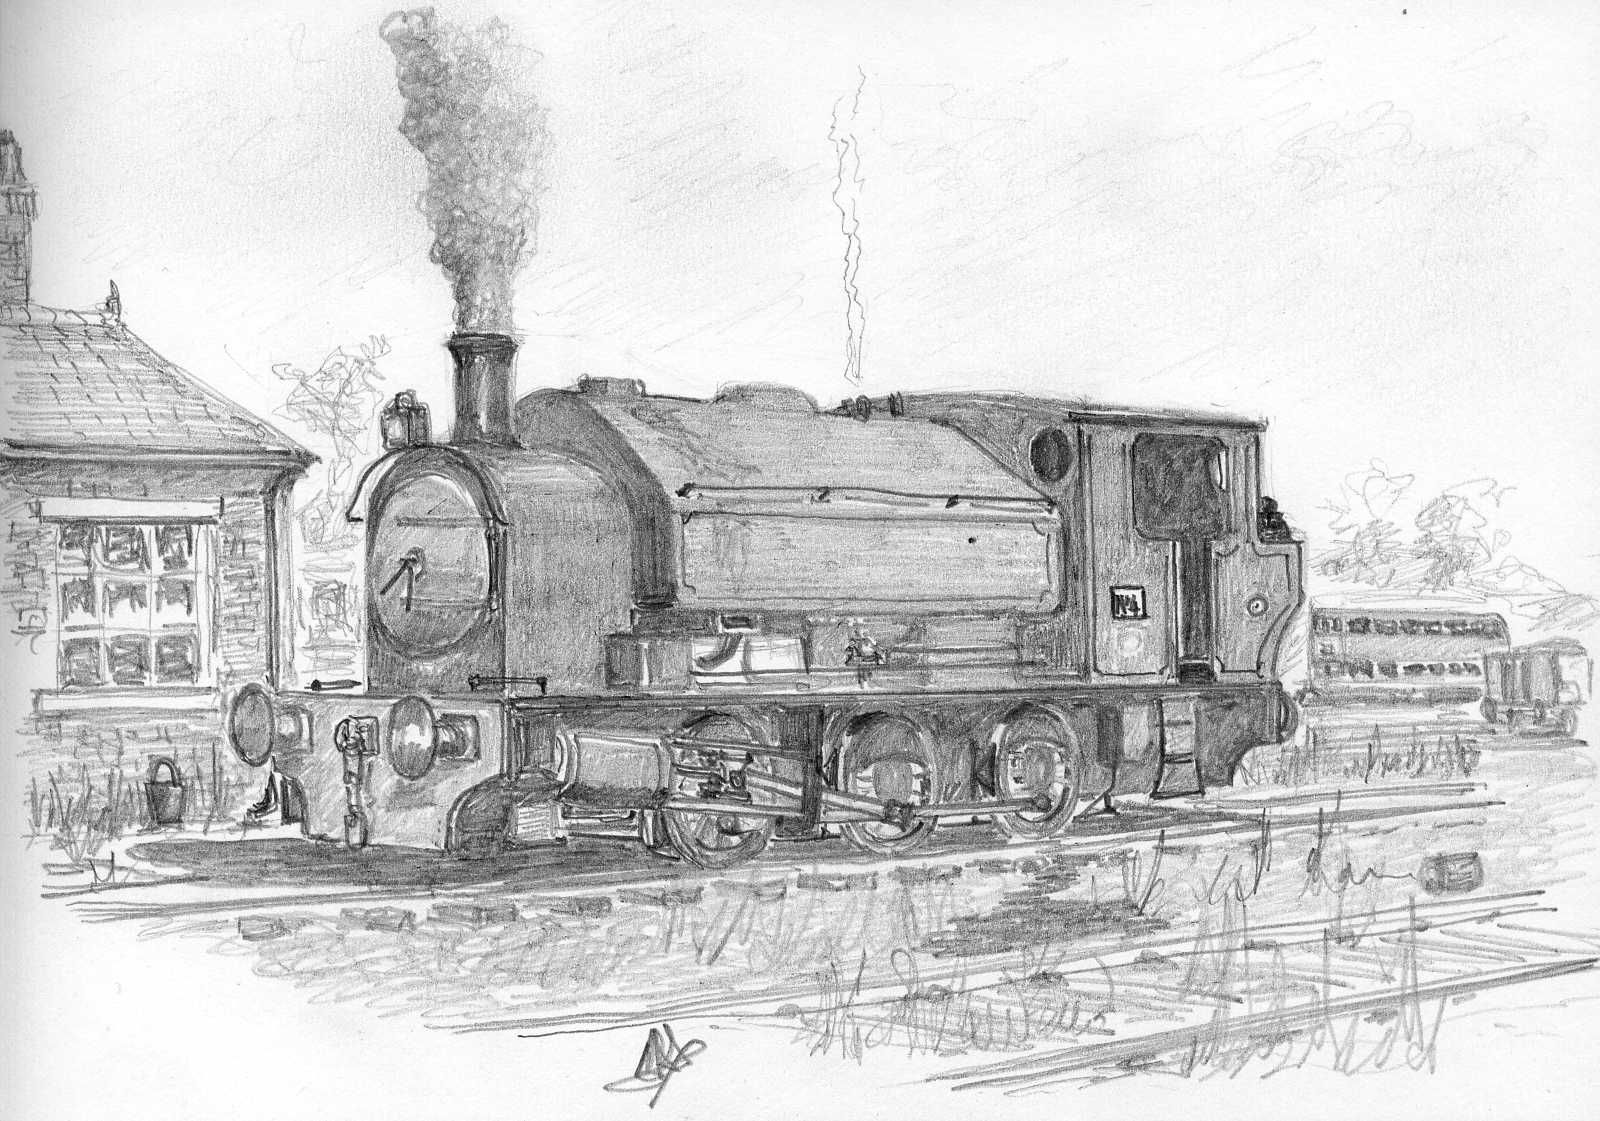 how to draw a steam engine train br86 steam locomotive with images steam locomotive how a steam to train draw engine